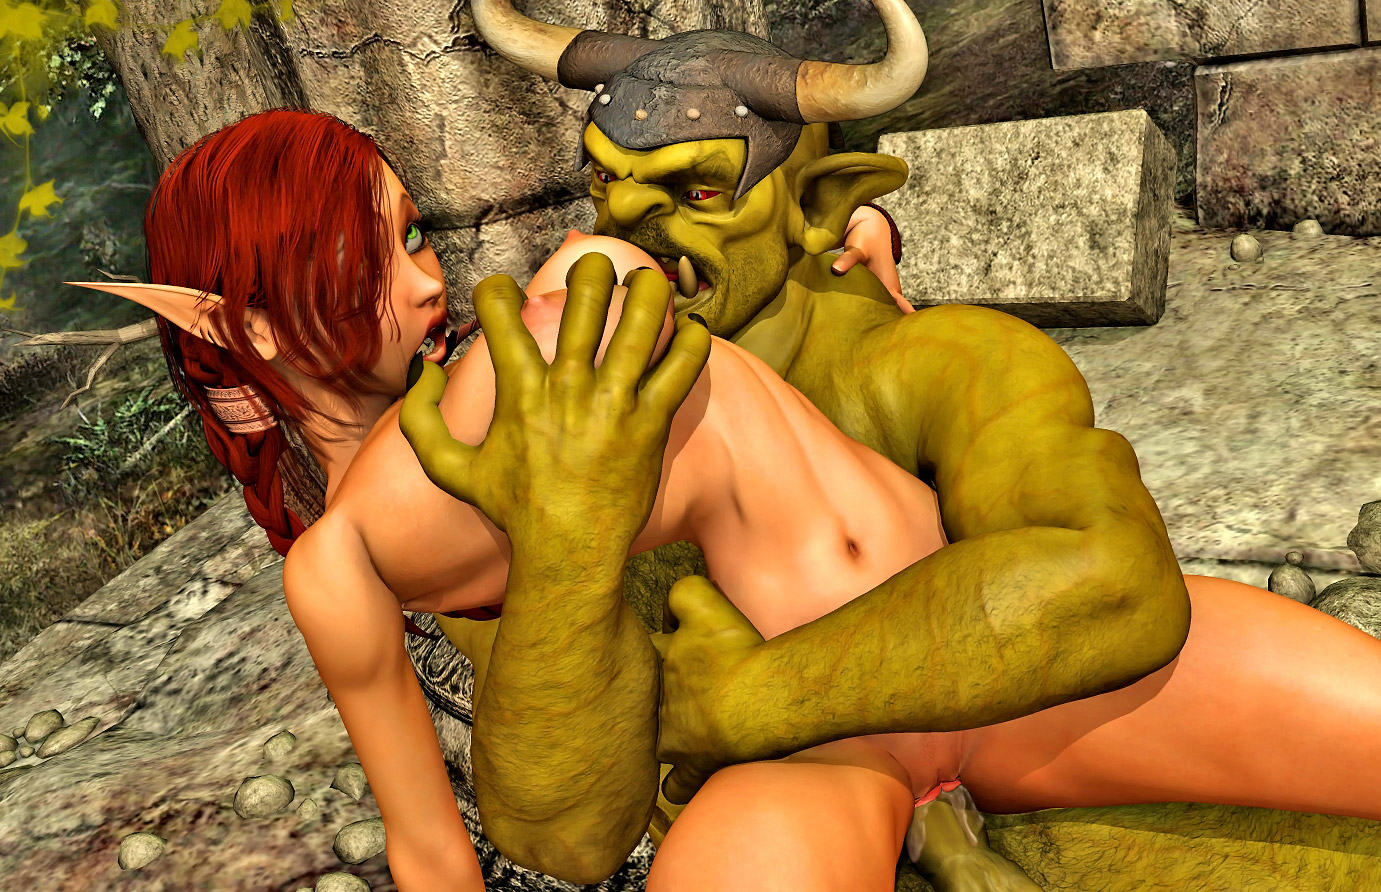 Fantasy 3d angele monster erotic art porn movies